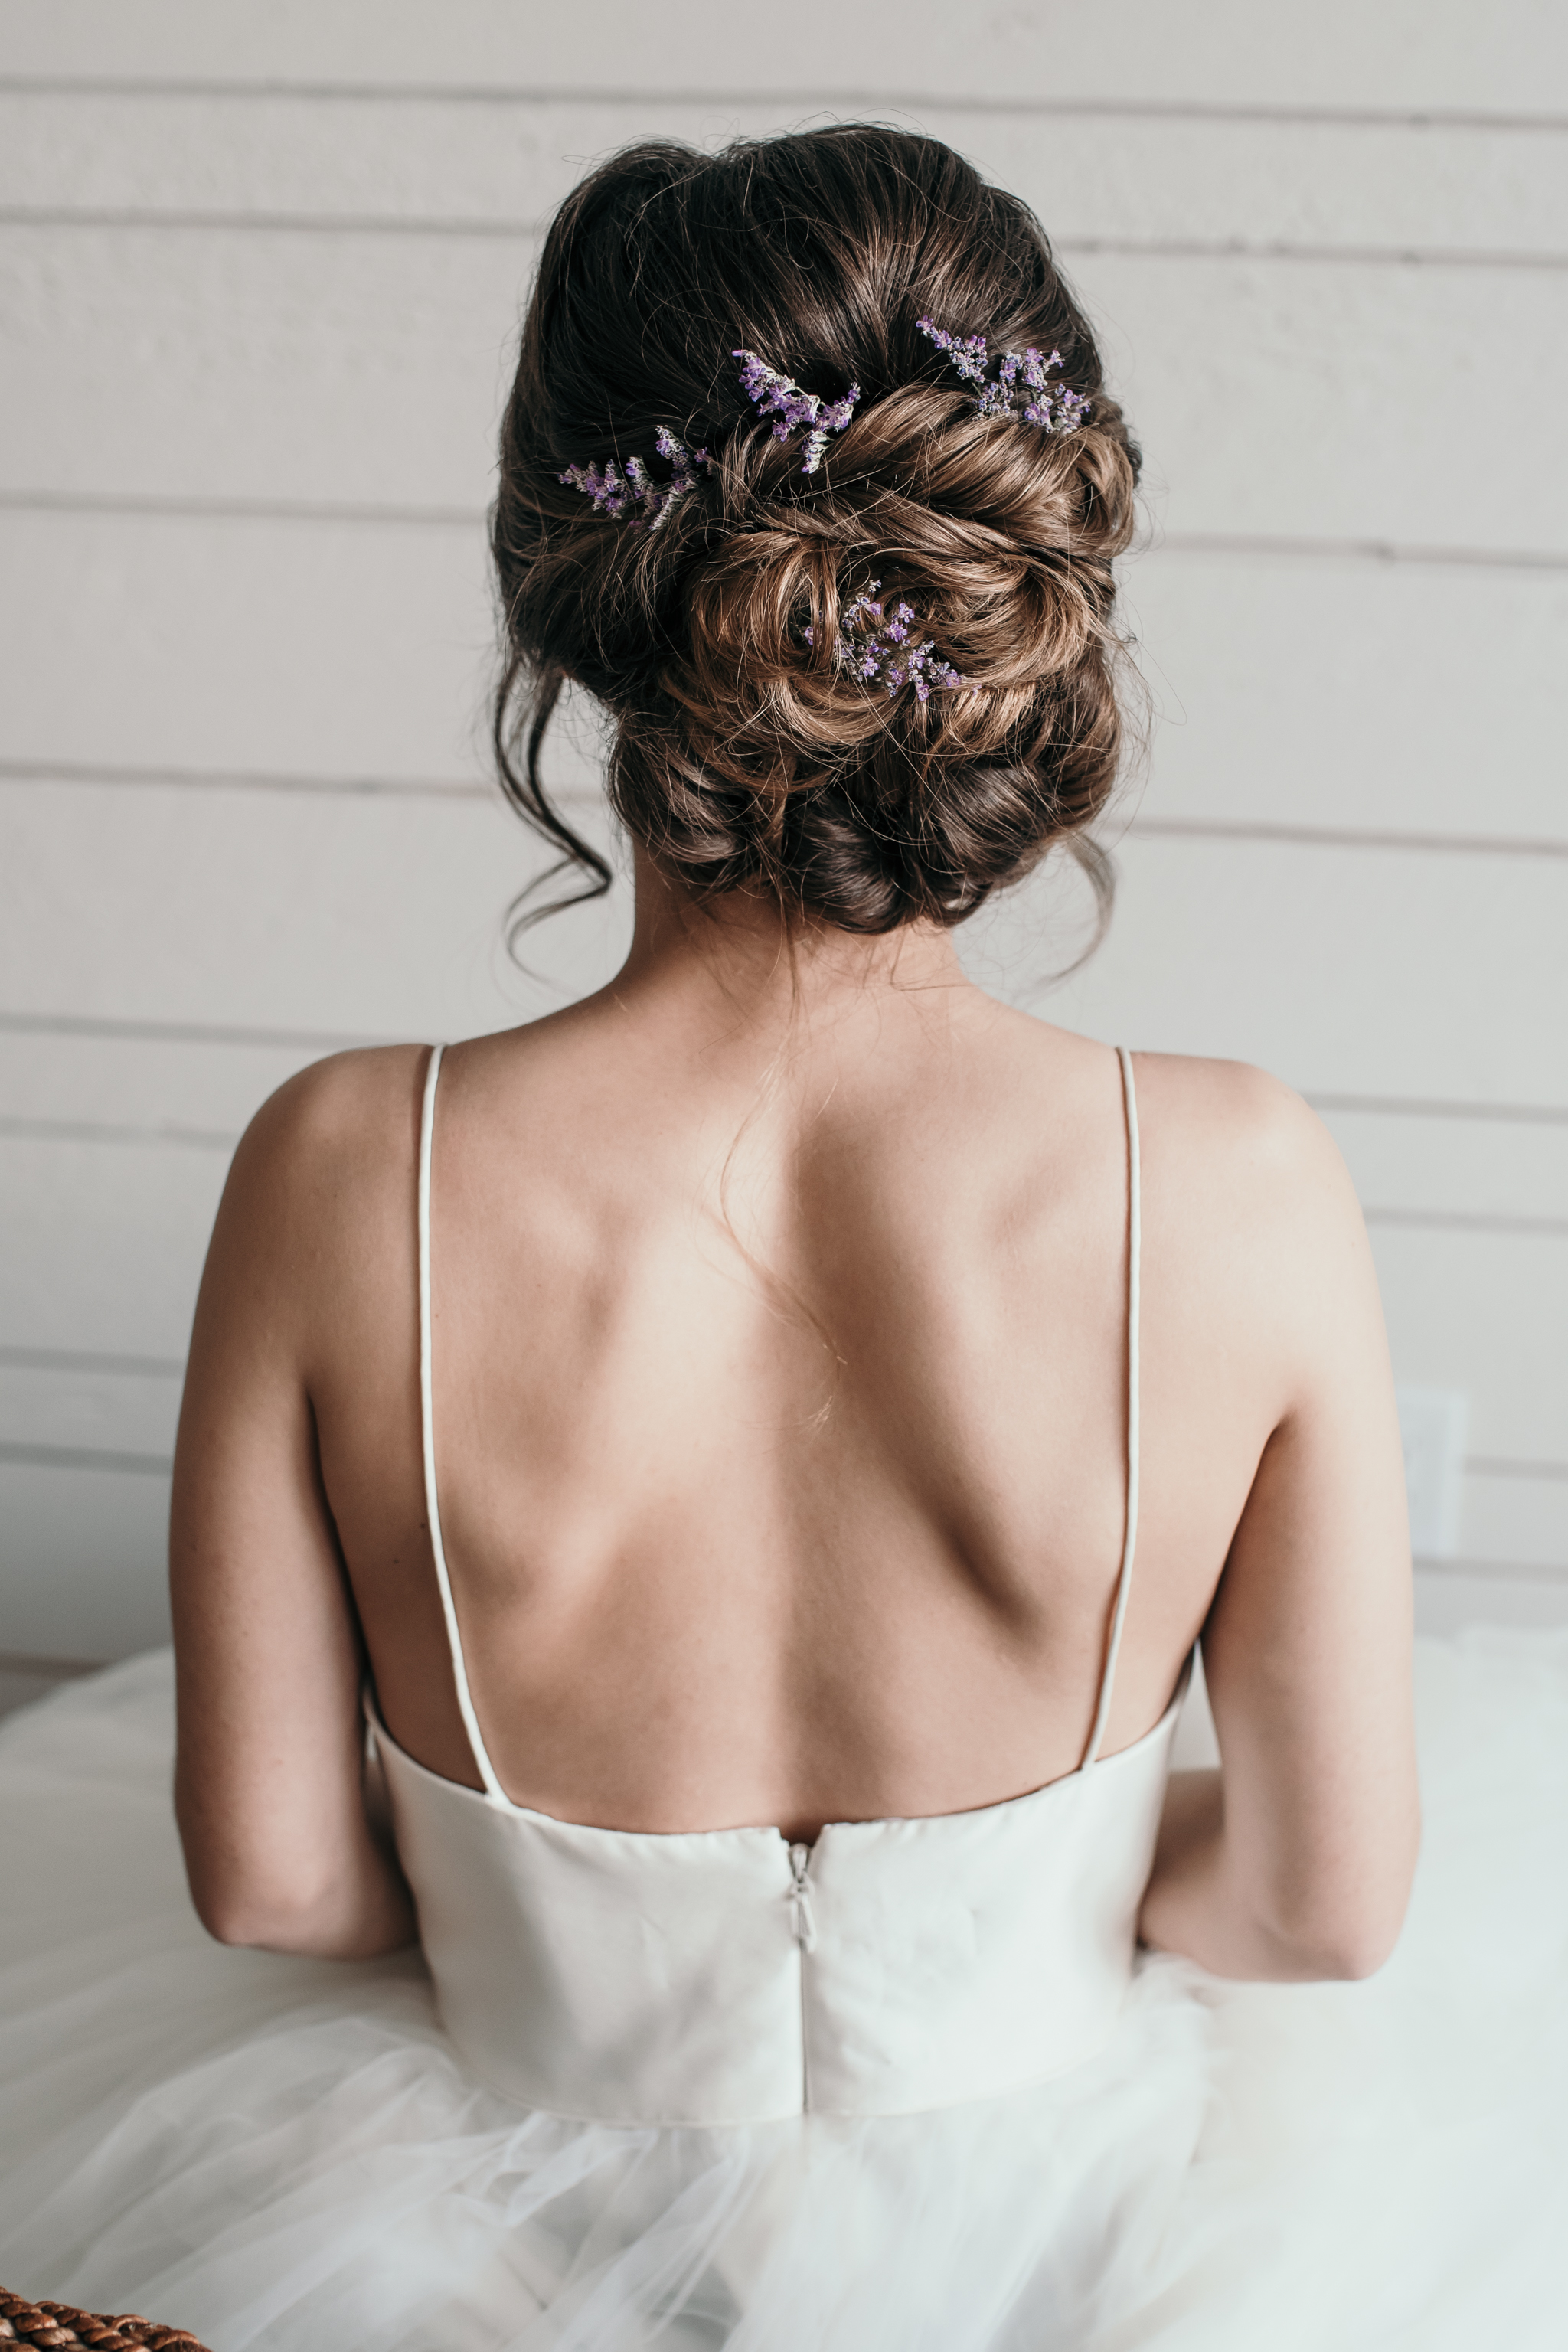 Jewel Tone Wedding Styled Shoot_Silver Knot_Montana Wedding Planner_Montana Wedding Photographer_Montana Wedding Videography_Honeybee Weddings-0613.jpg